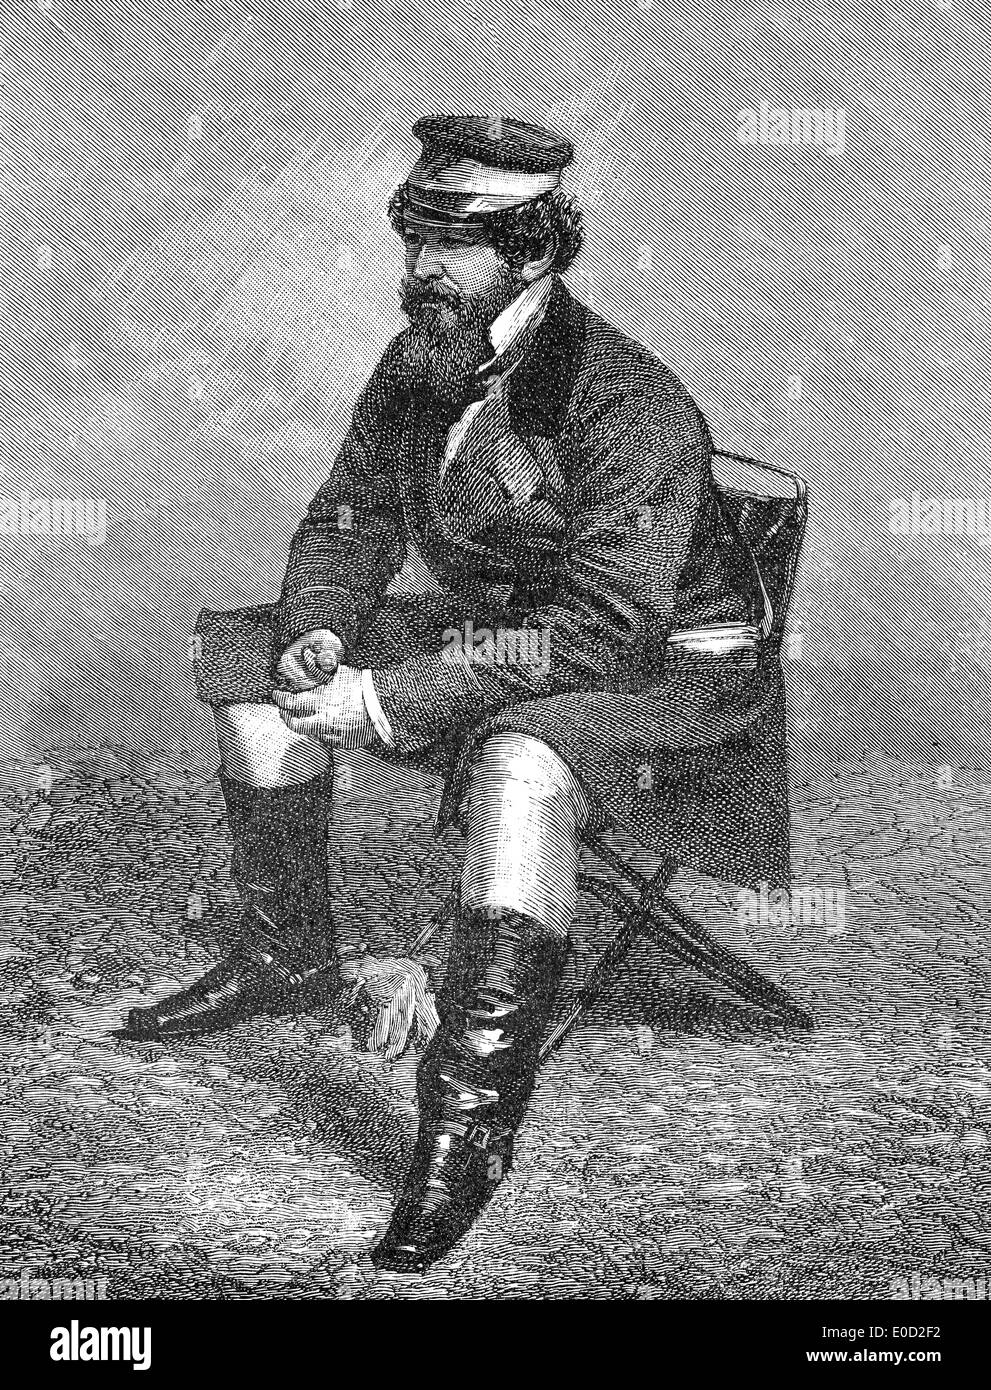 Sir William Howard Russell, 1820 - 1907, a Irish reporter with The Times, first modern war correspondent, - Stock Image